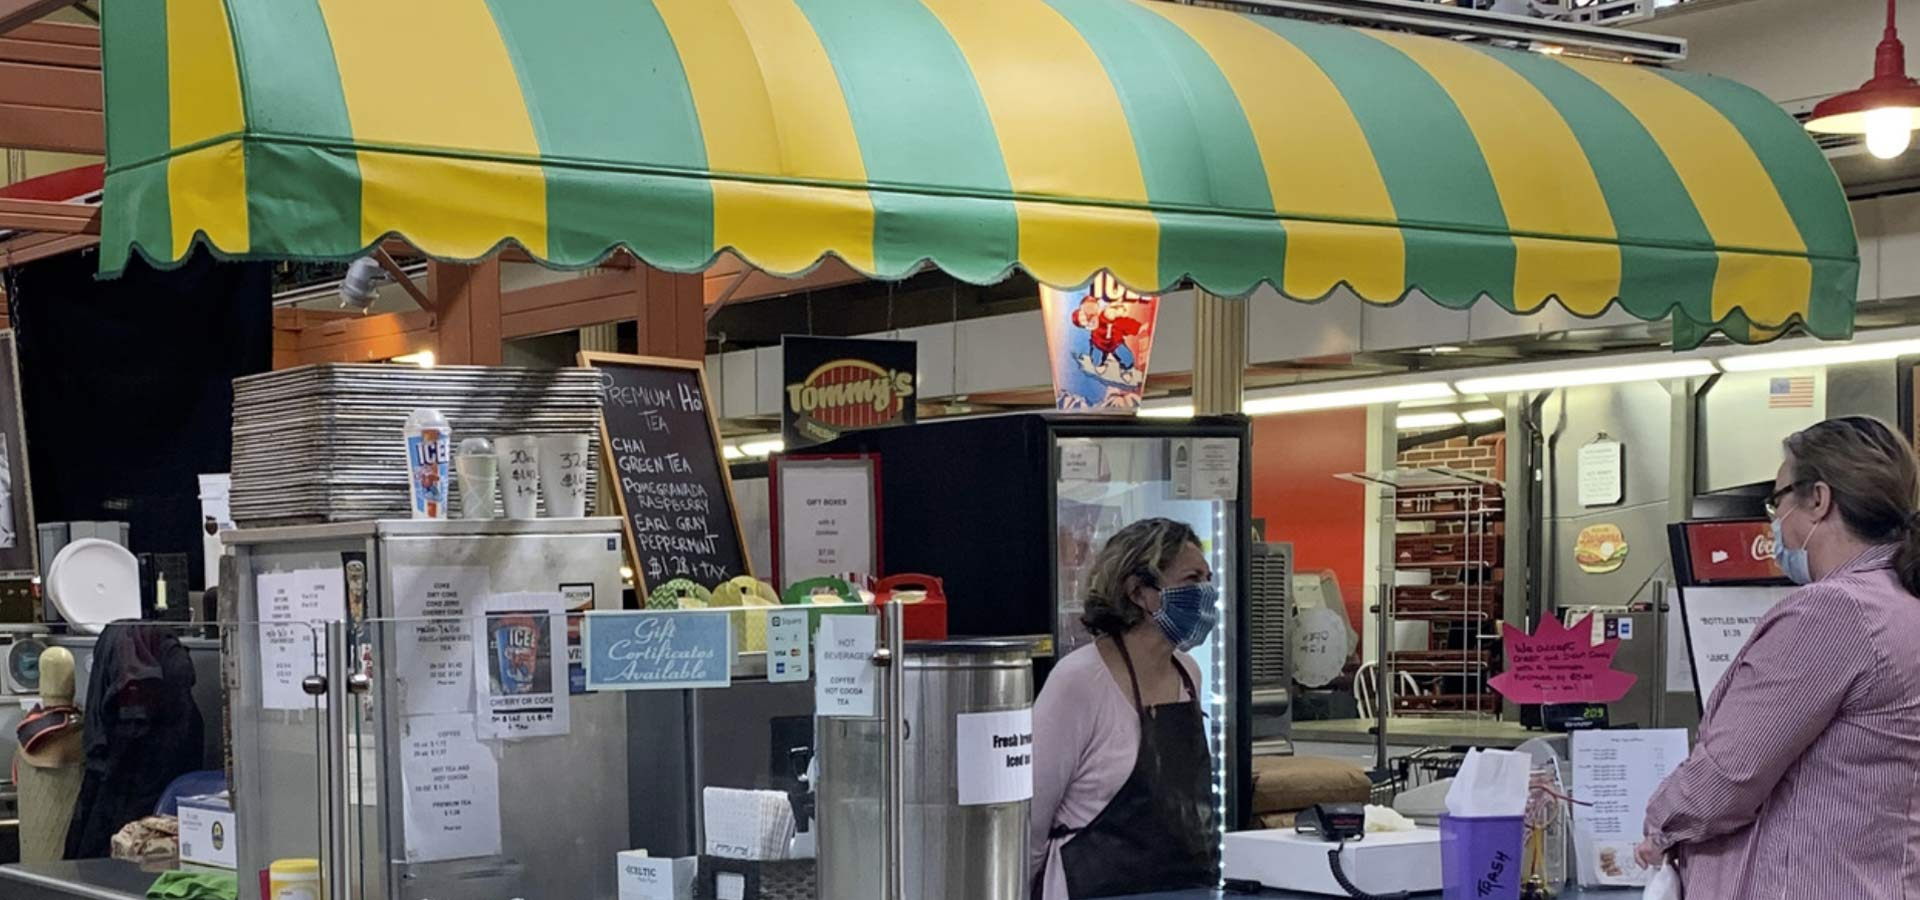 Indianapolis City Market: Re-opening Plan